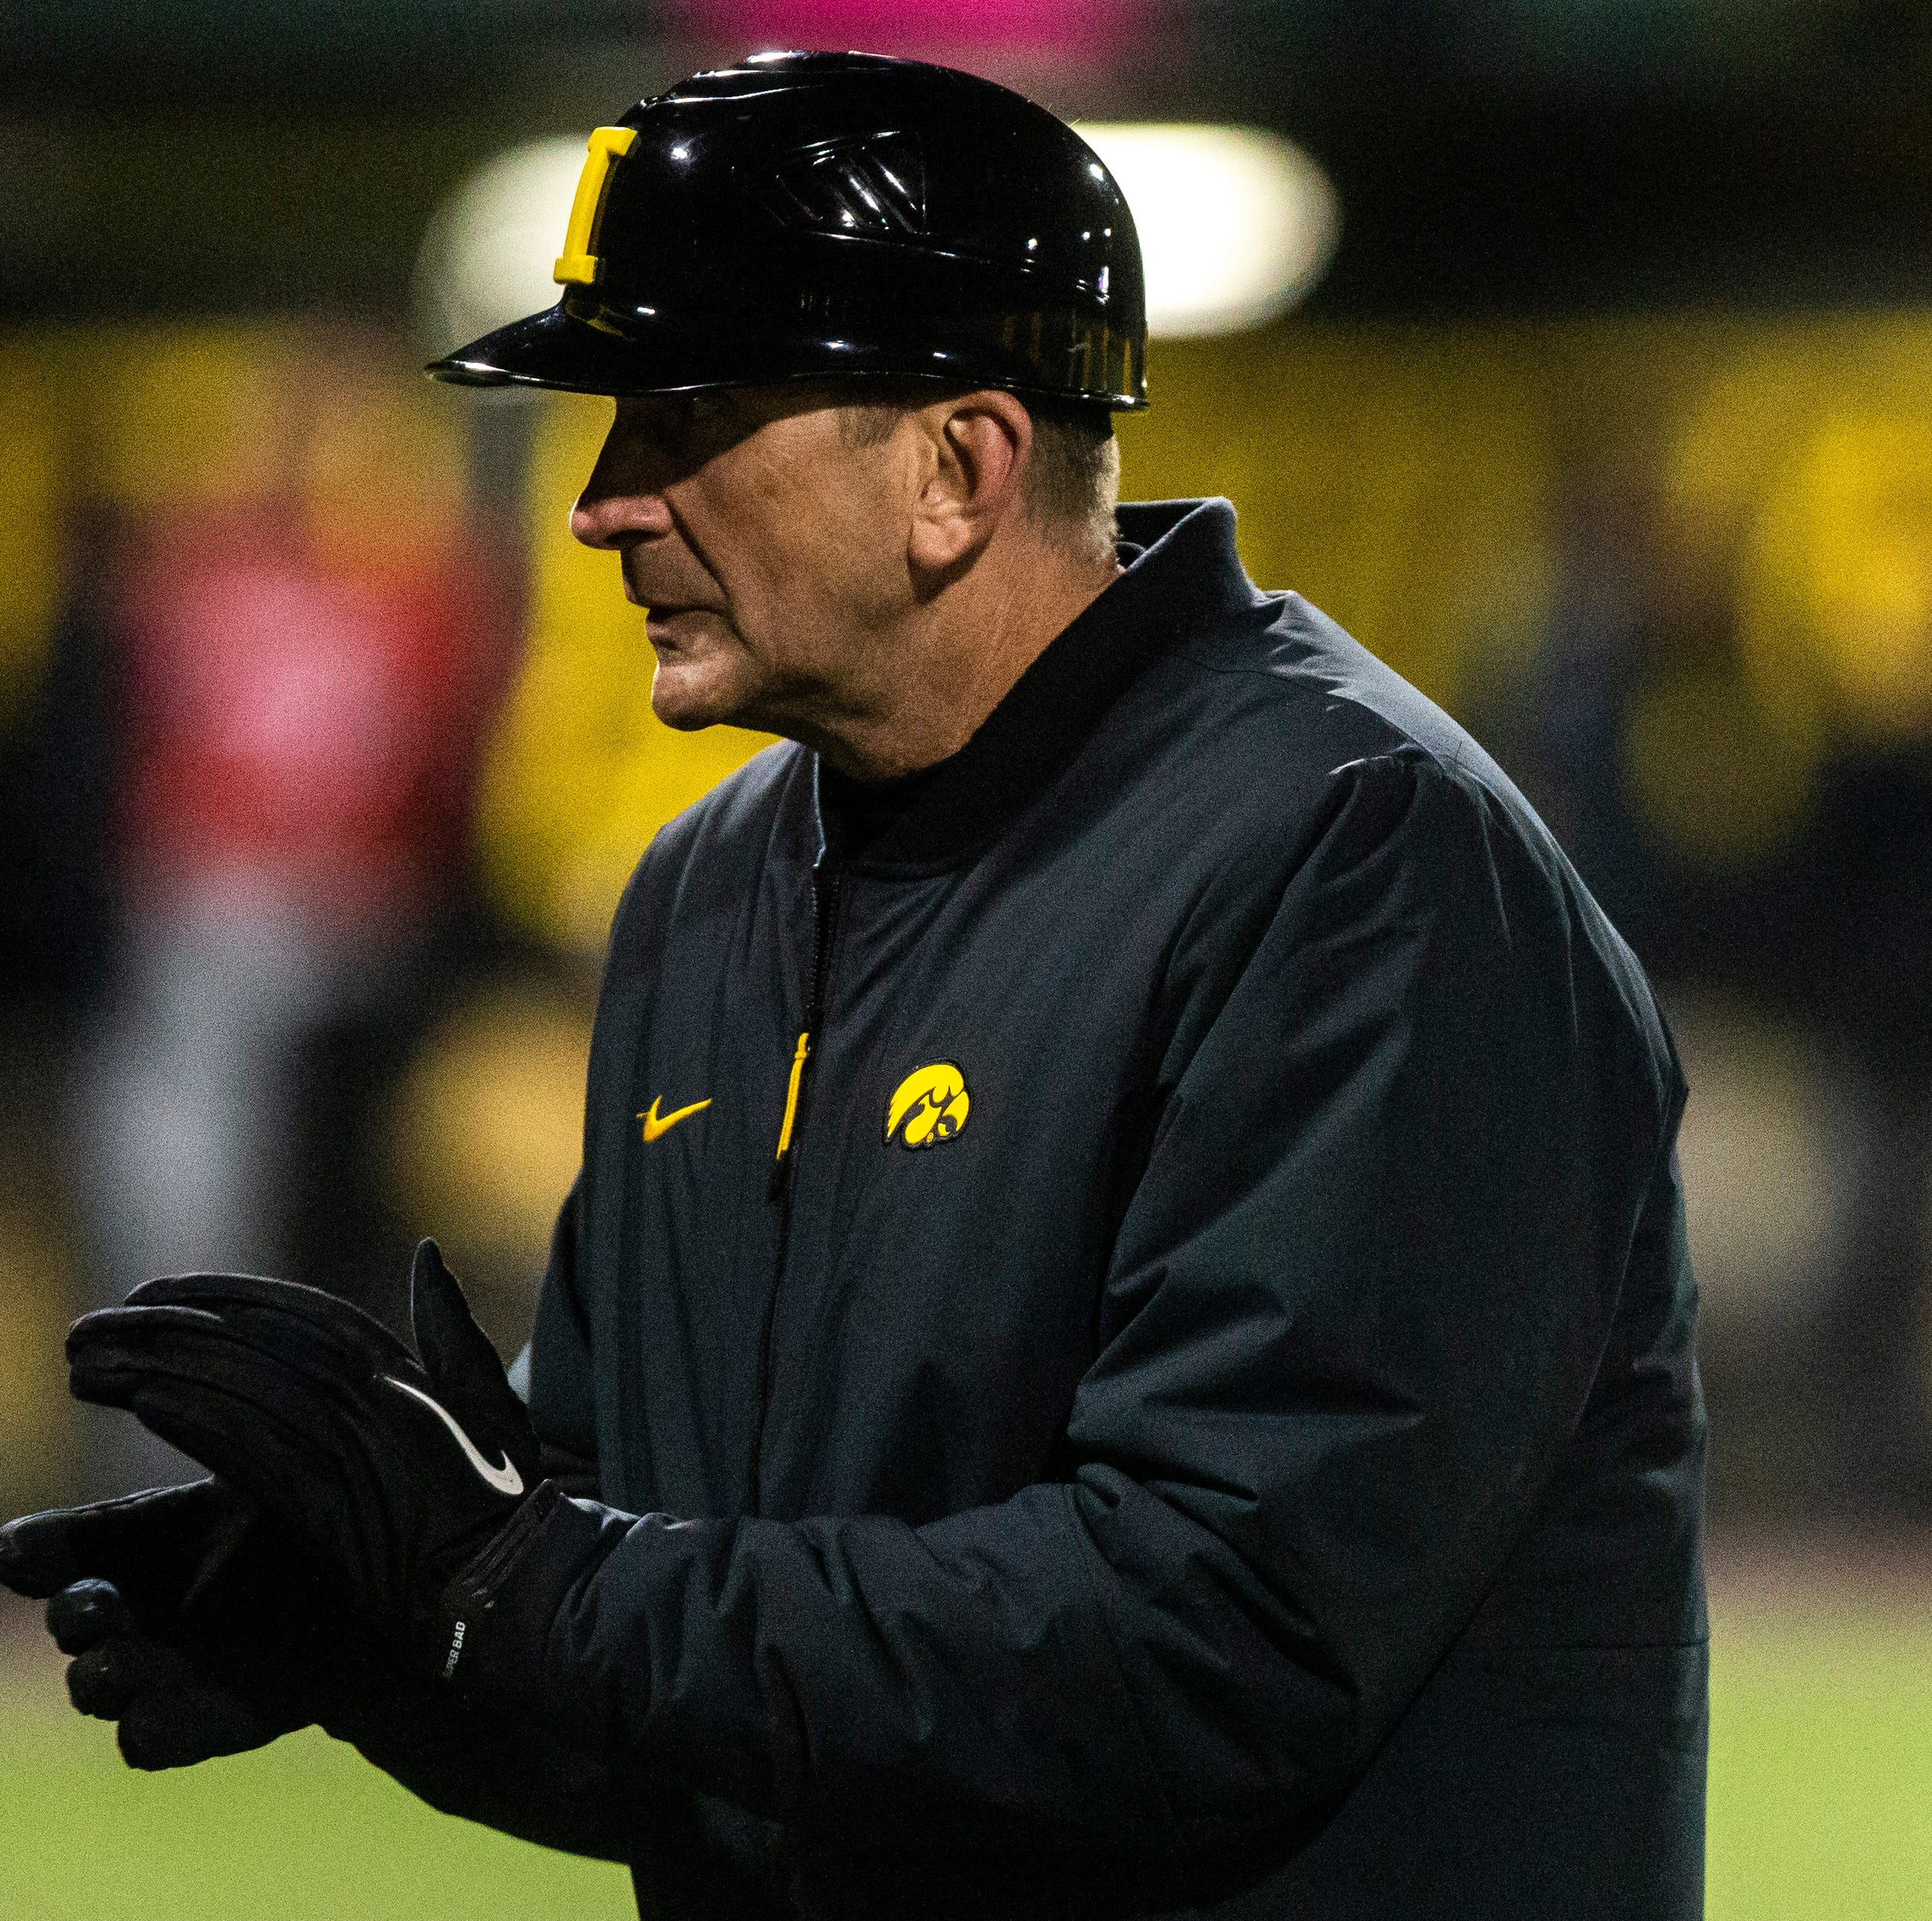 Iowa baseball: Swift start pushes Hawkeyes past Purdue in series opener